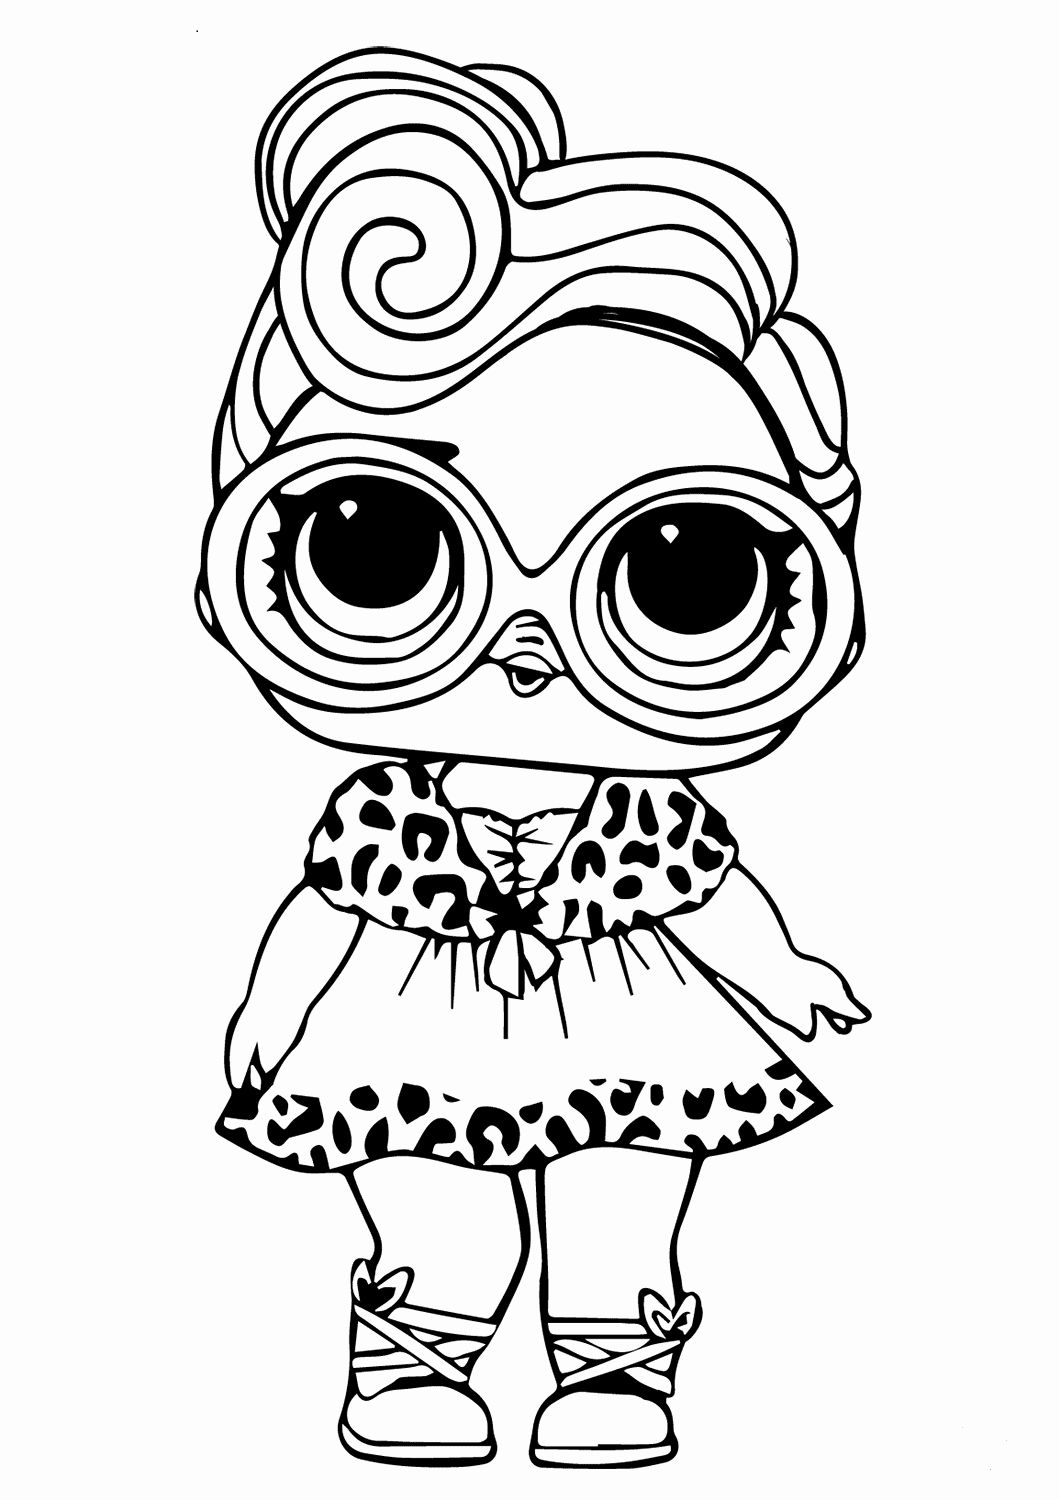 Lol Coloring Pages Free Lovely 40 Free Printable Lol Surprise Dolls Coloring Pages Free Printable Coloring Pages Coloring Pages Coloring Pictures